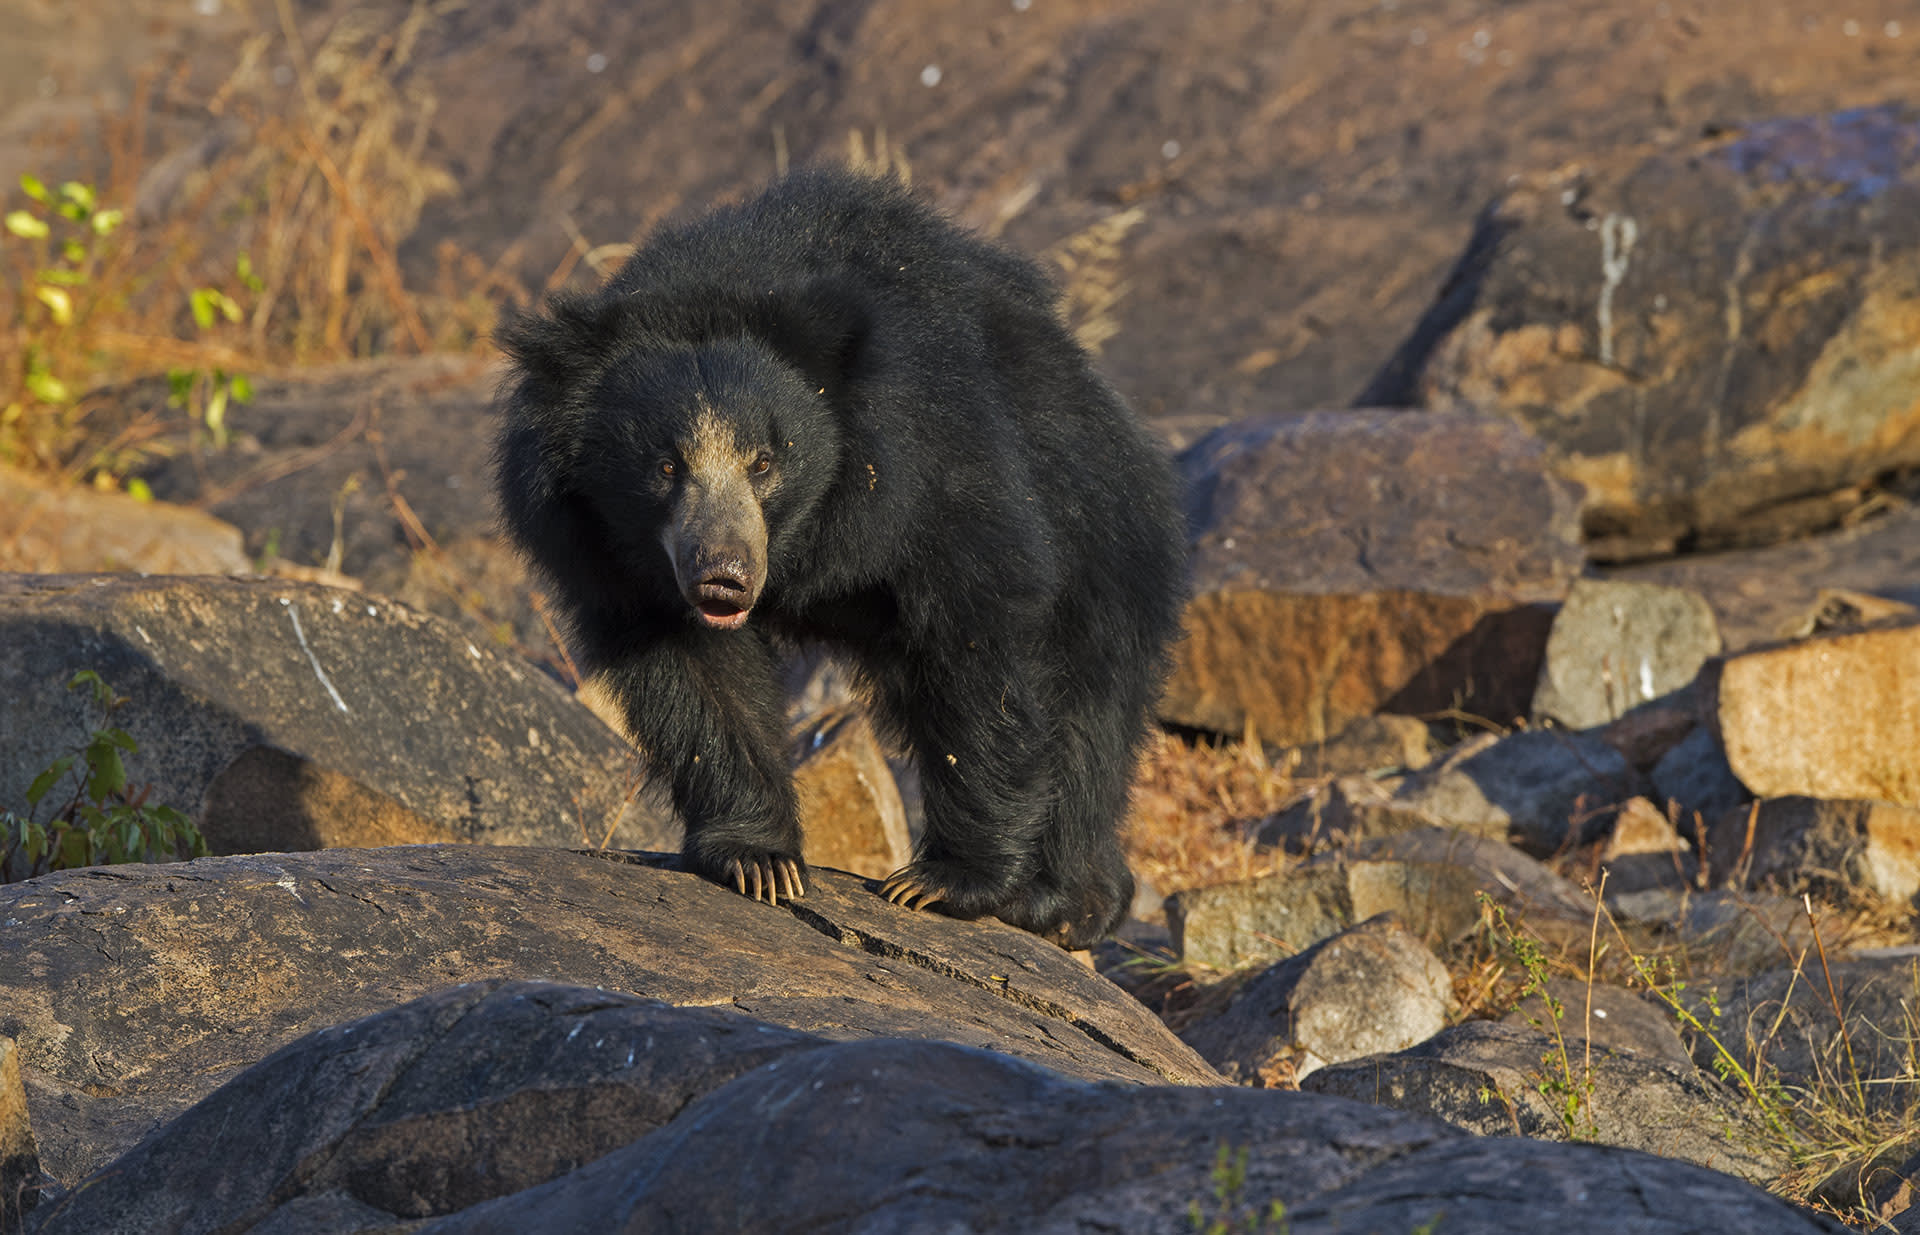 """""""Wild sloth bears generally do not frequent areas used by humans,"""" writes Nishith Dharaiya in the article, Escalating Human-Sloth Bear Conflicts In North Gujarat: A Tough Time To Encourage Support For Bear Conservation, """"but when streams and waterholes in forests dry up, and where suitable habitat is limited, bears might predictably move towards sources of water or food at villages and in doing so increase their chances of encountering humans."""""""